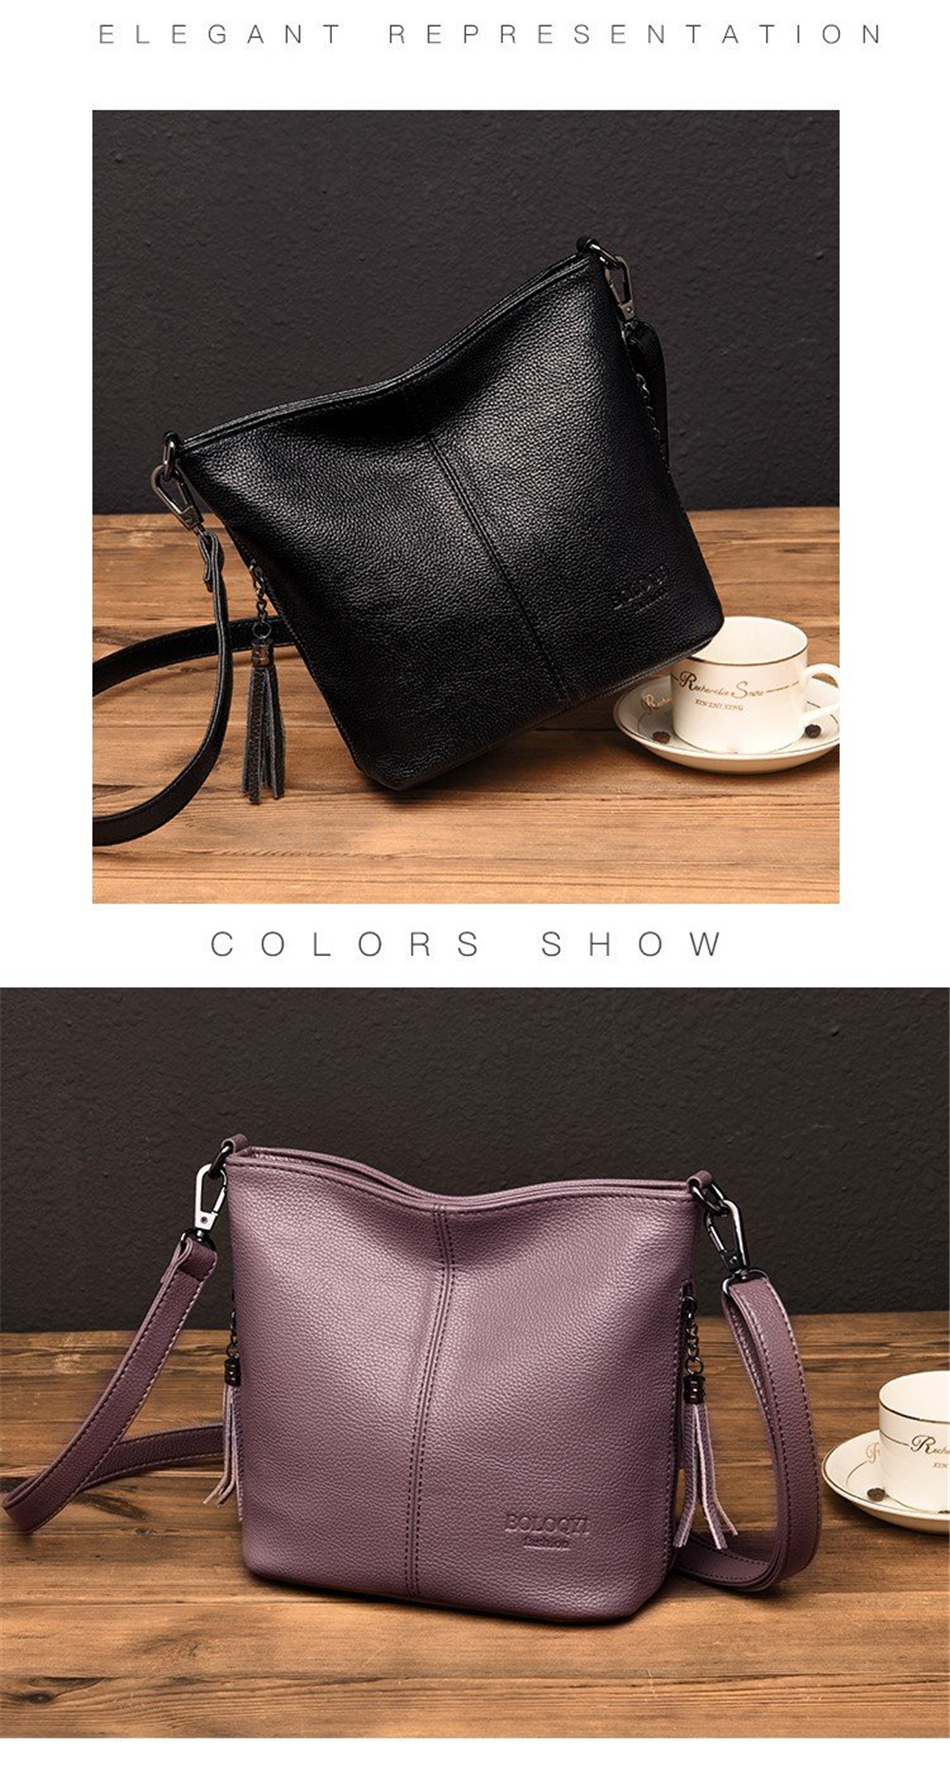 Ladies Hand Crossbody Bags For Women 2020 Luxury Purses And Handbags Women Leather Tassels Shoulder Bags Designer Bucket Sac